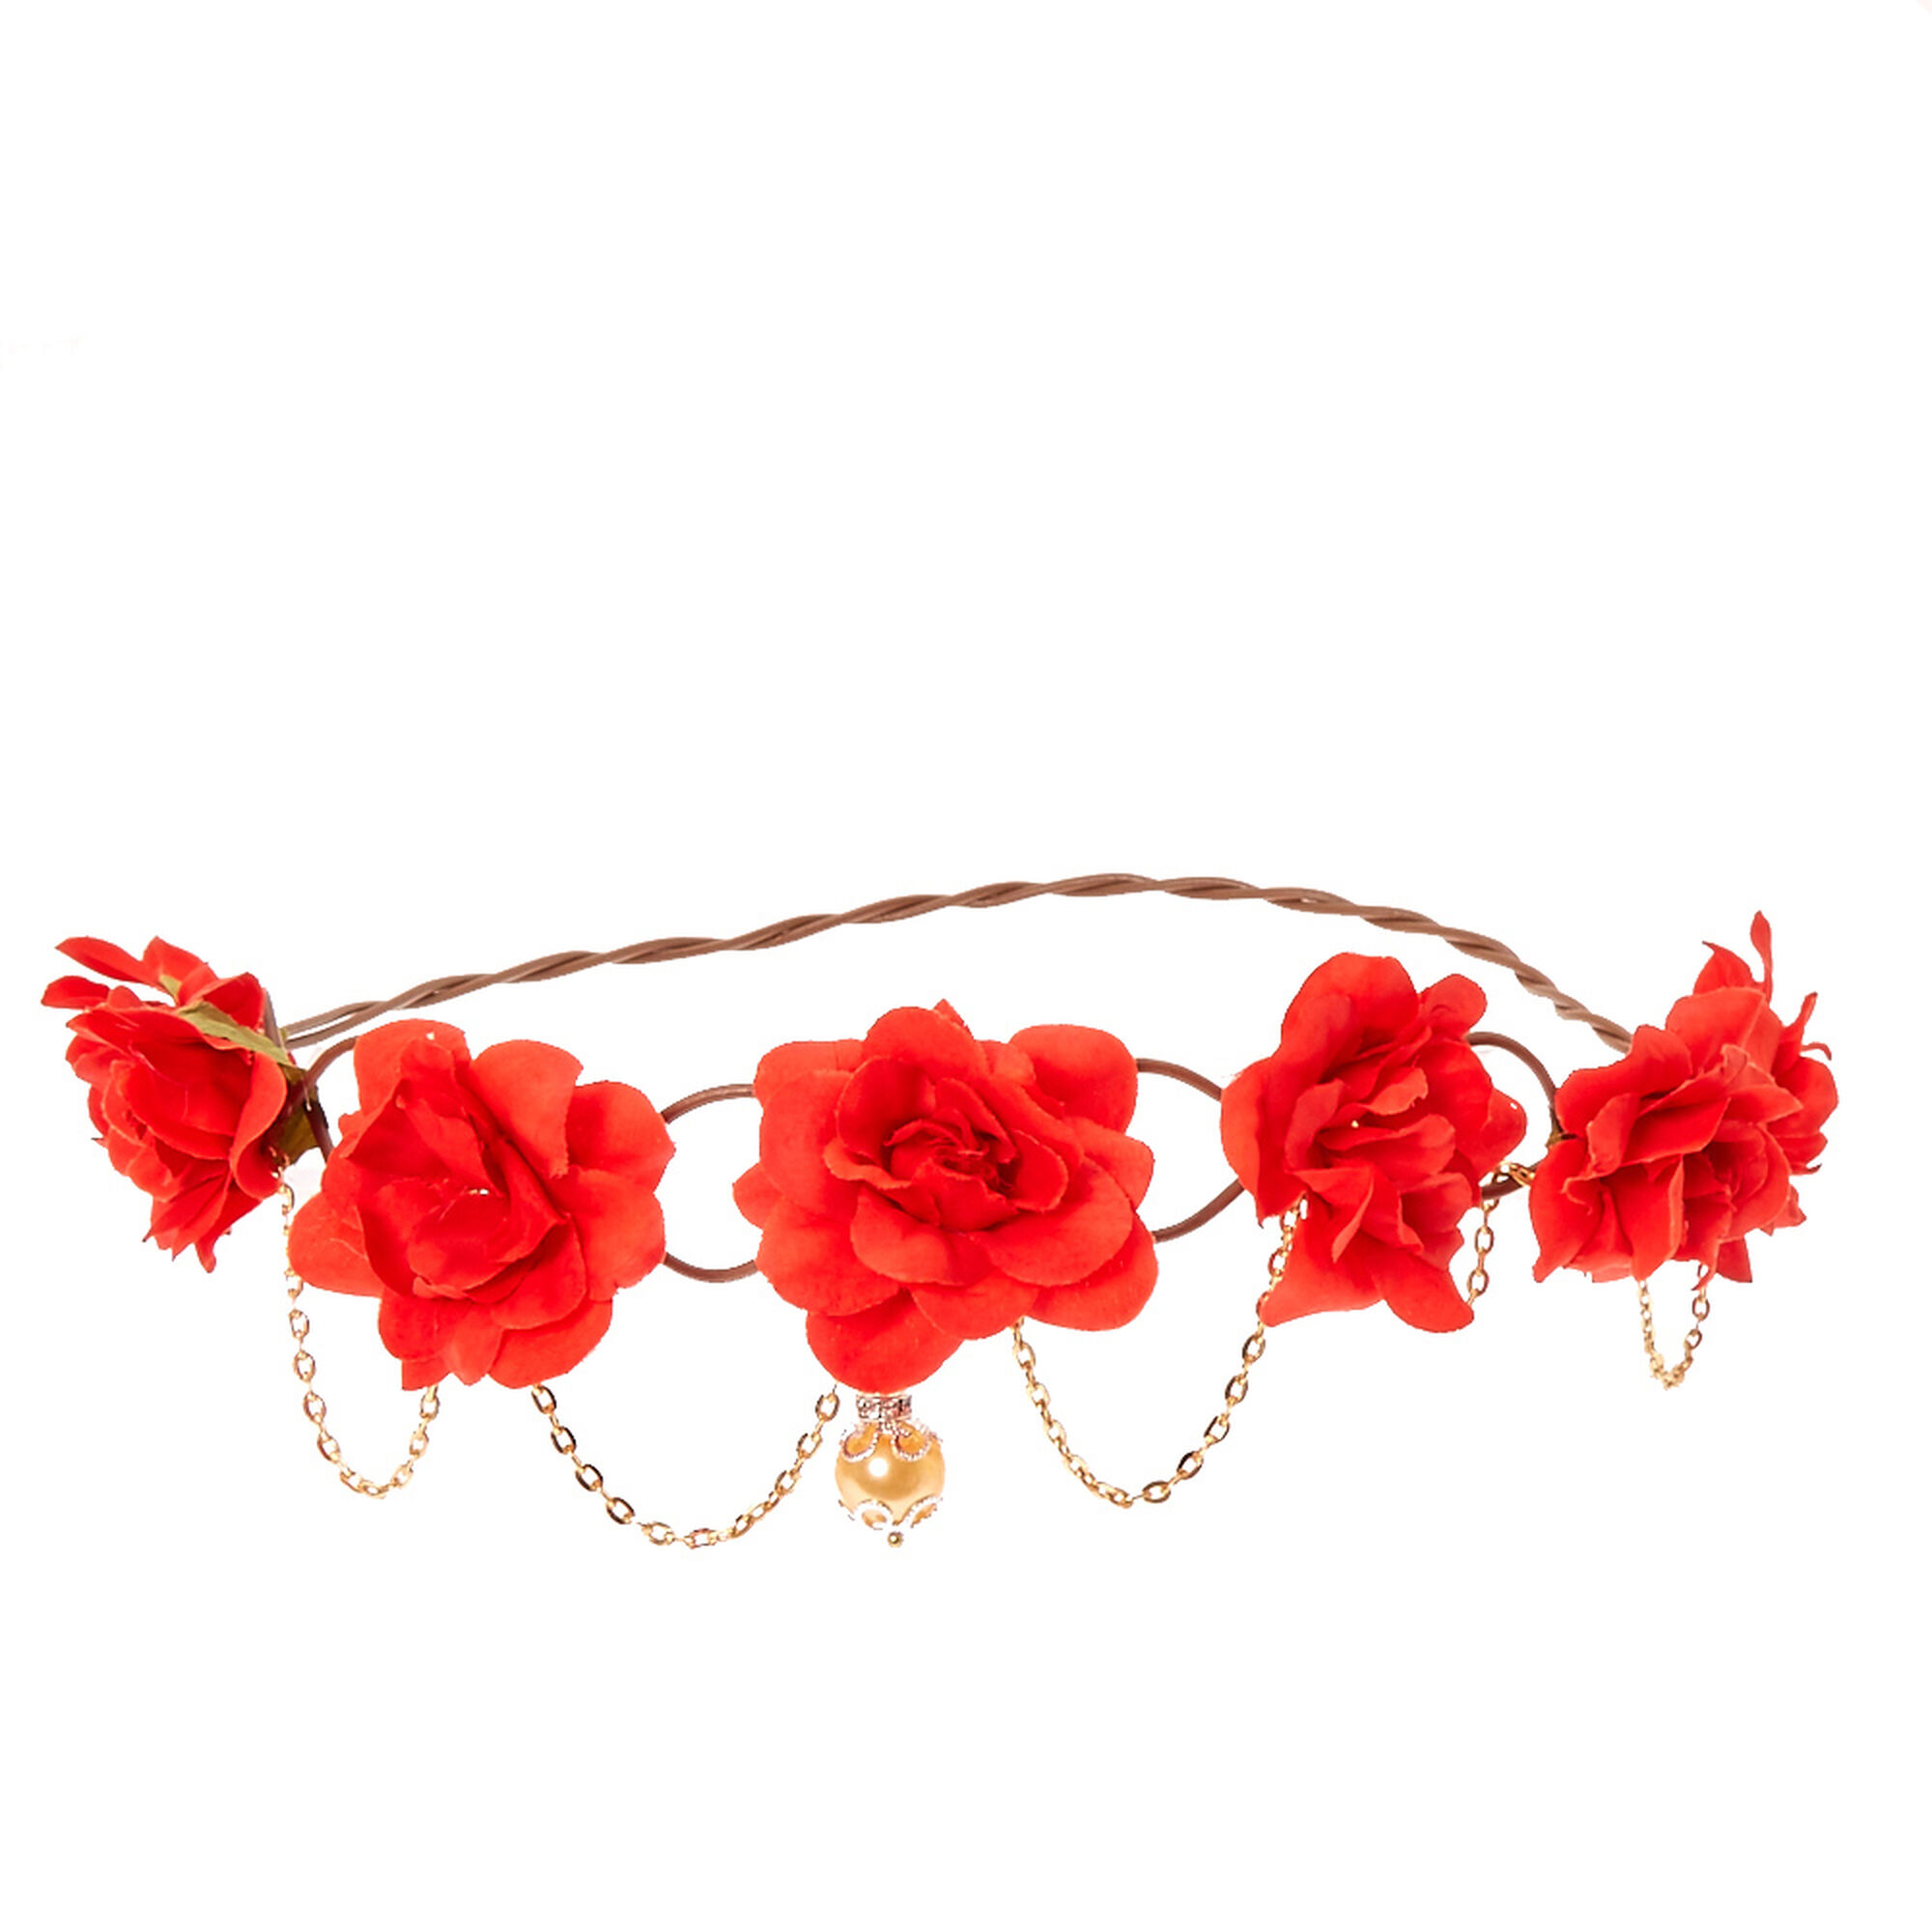 Red flowers and golden chain hair flower crown claires red flowers and golden chain hair flower crown izmirmasajfo